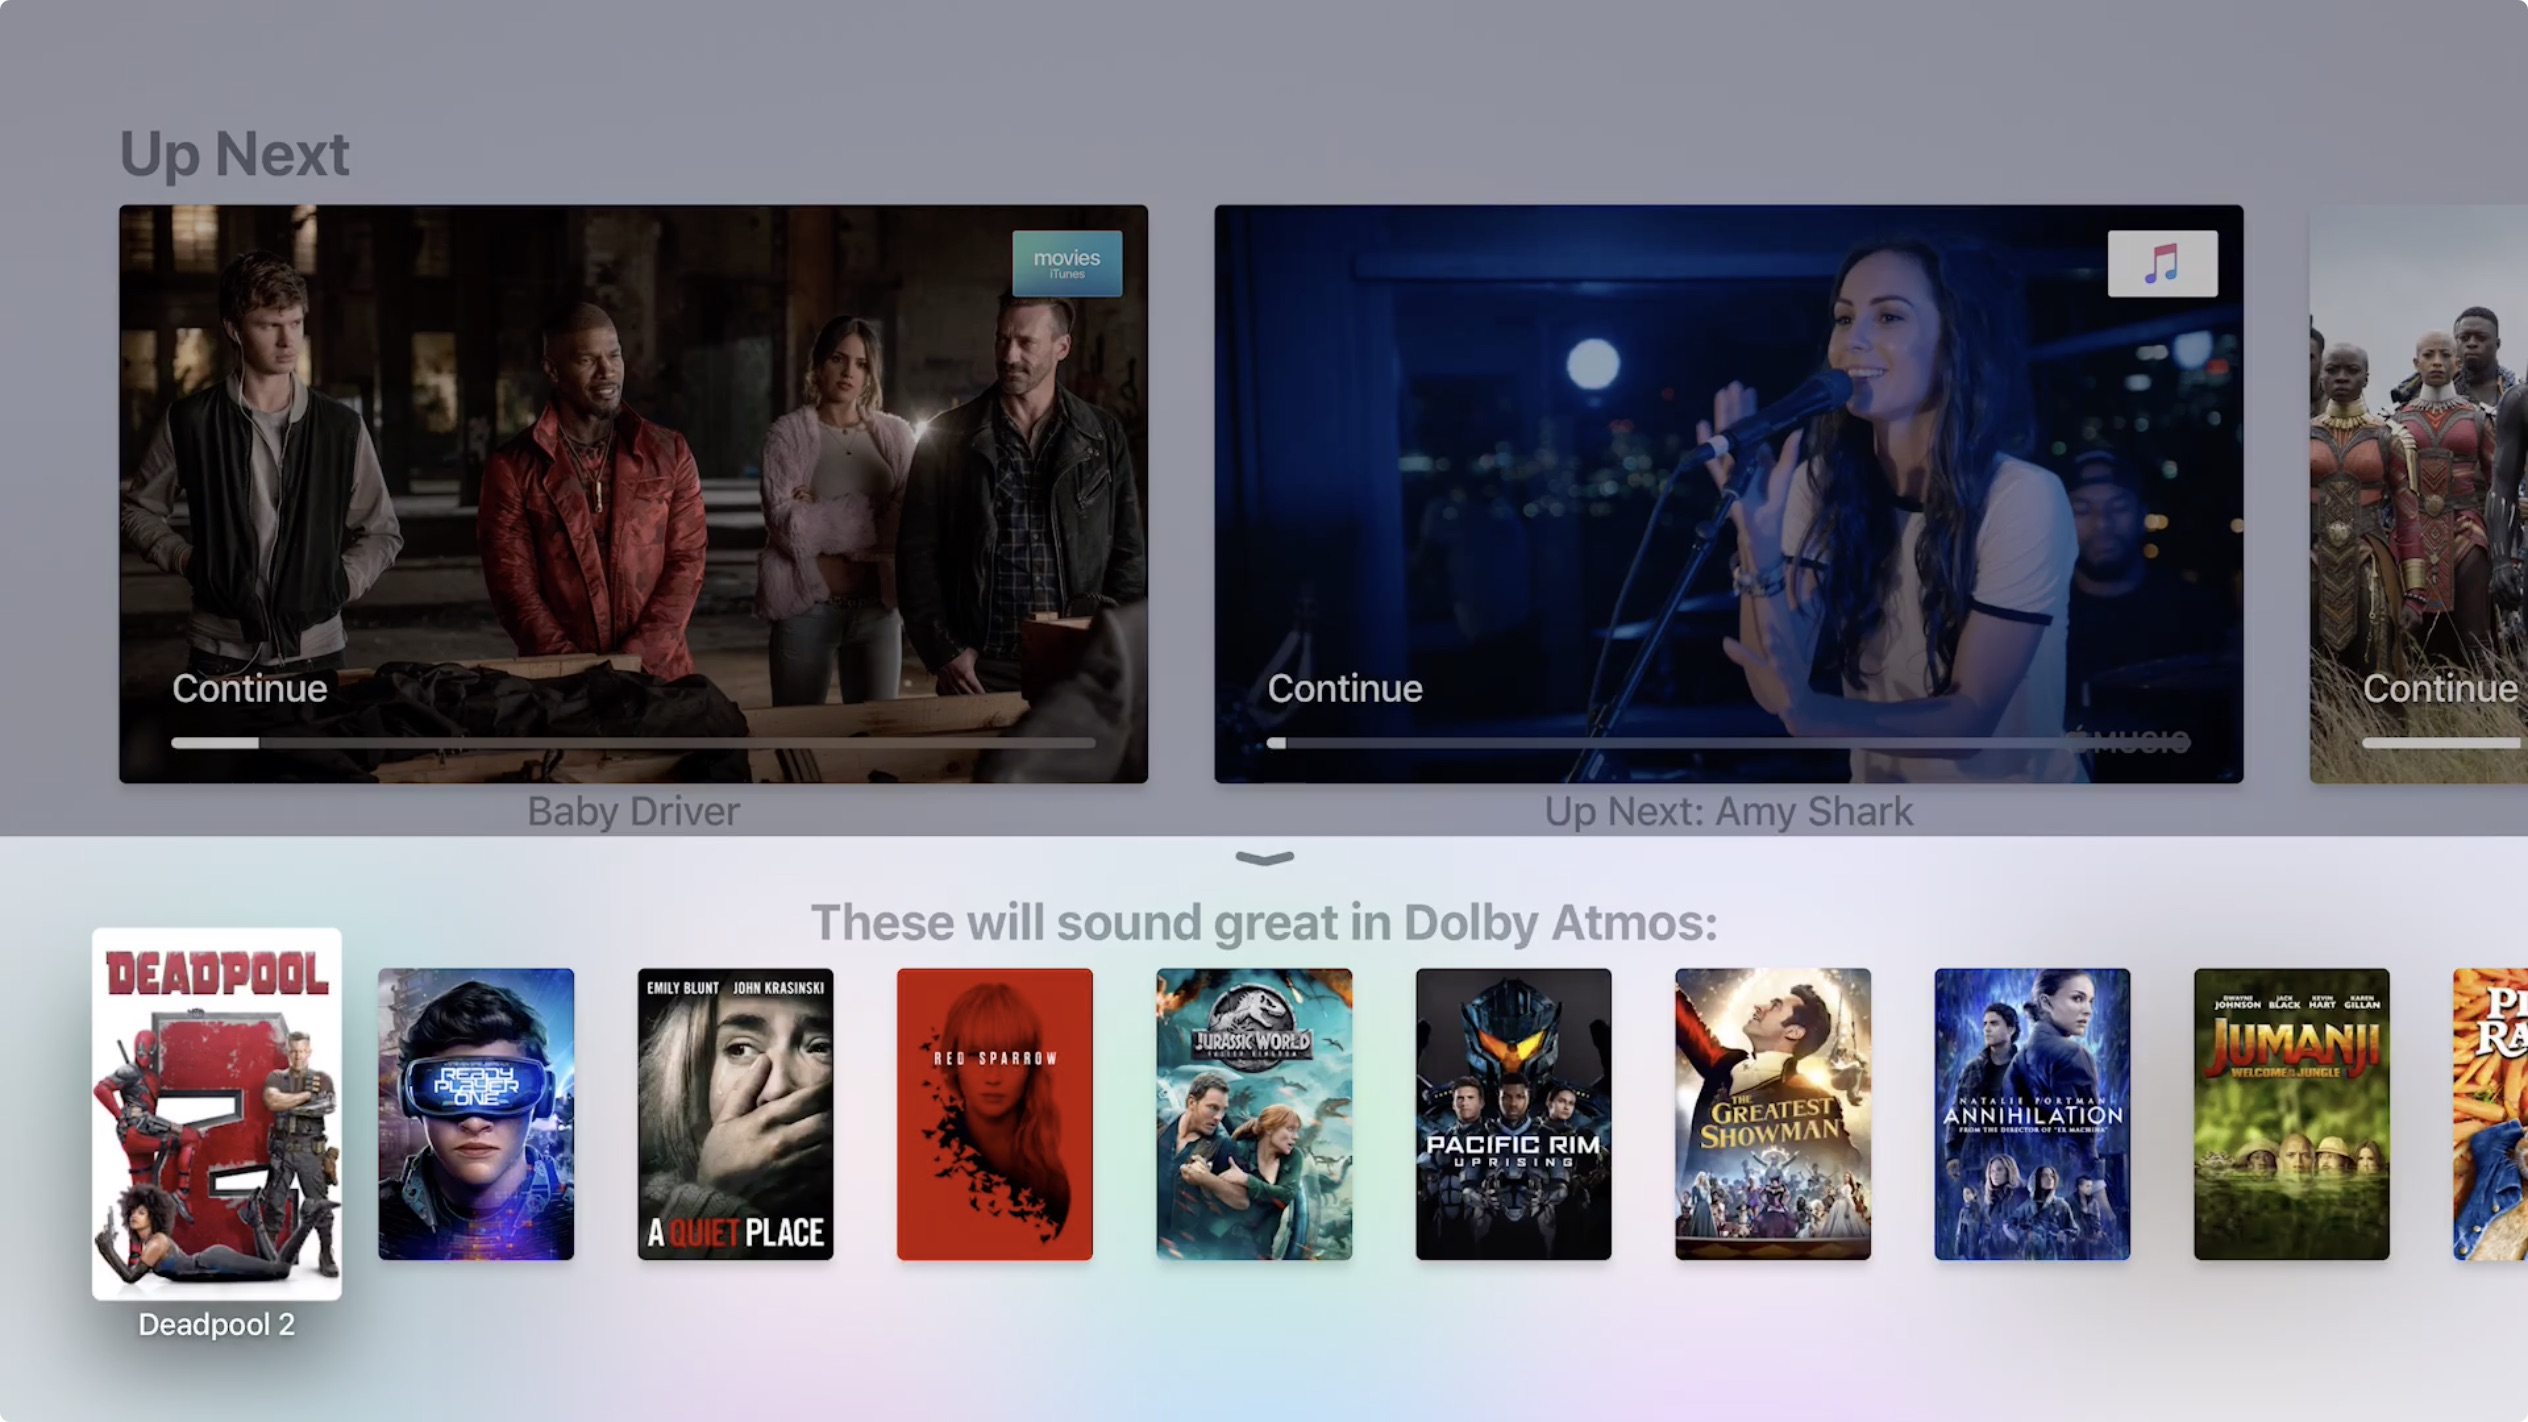 tvOS 12 now available for Apple TV 4 and Apple TV 4K, brings Dolby Atmos audio, screensaver updates, more